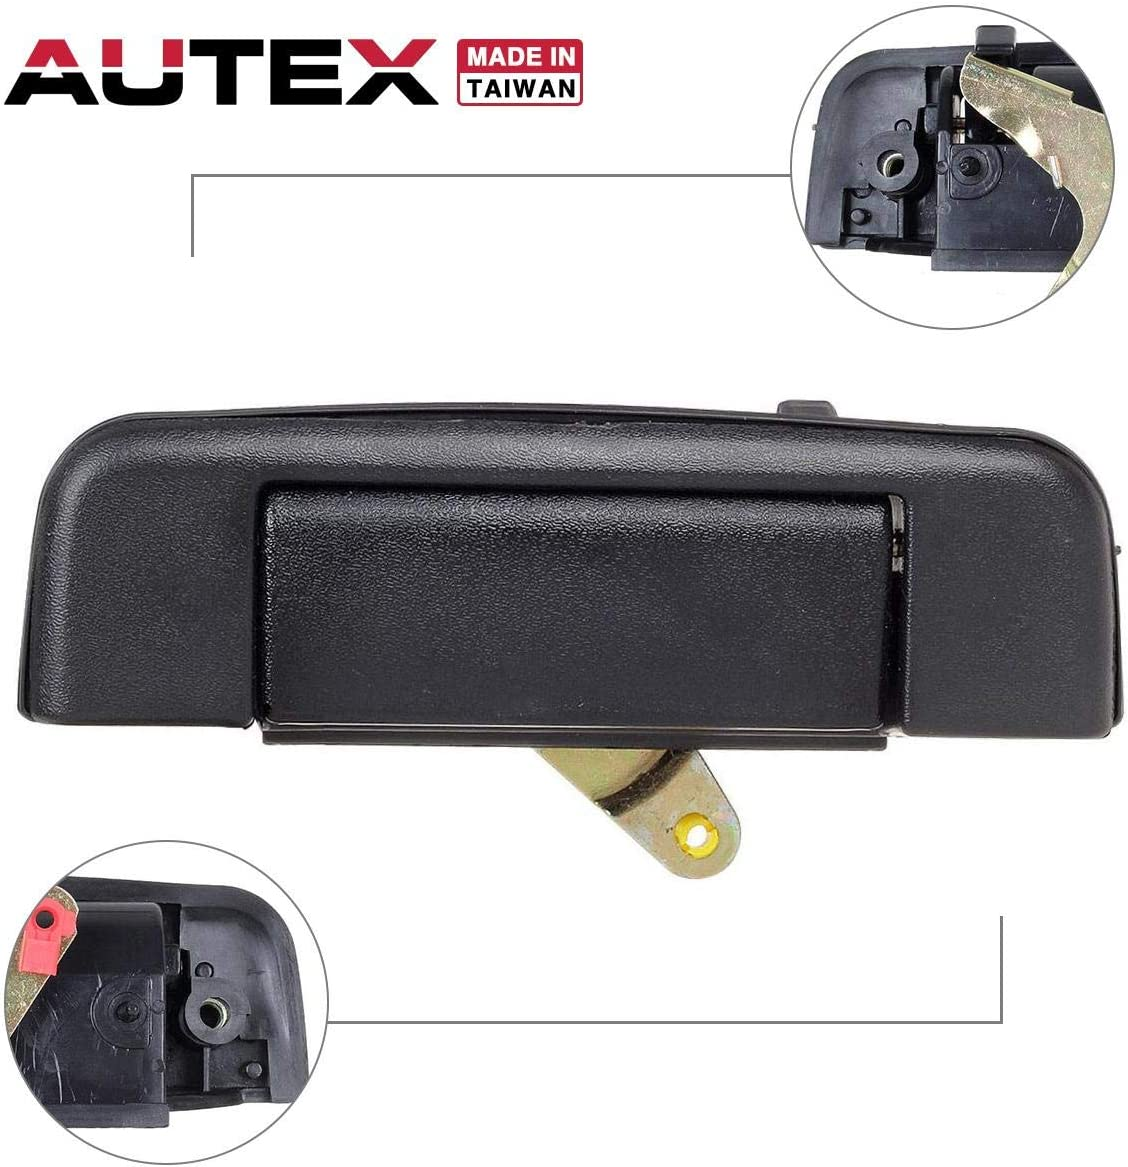 6909089102 AUTEX 1pcs Tailgate Lift Tail Gate Rear Latch Cargo Hatch Door Handle Compatible with Toyota Pickup 1989 1990 1991 1992 1993 1994 1995 77103 69090-89102 TO1915101